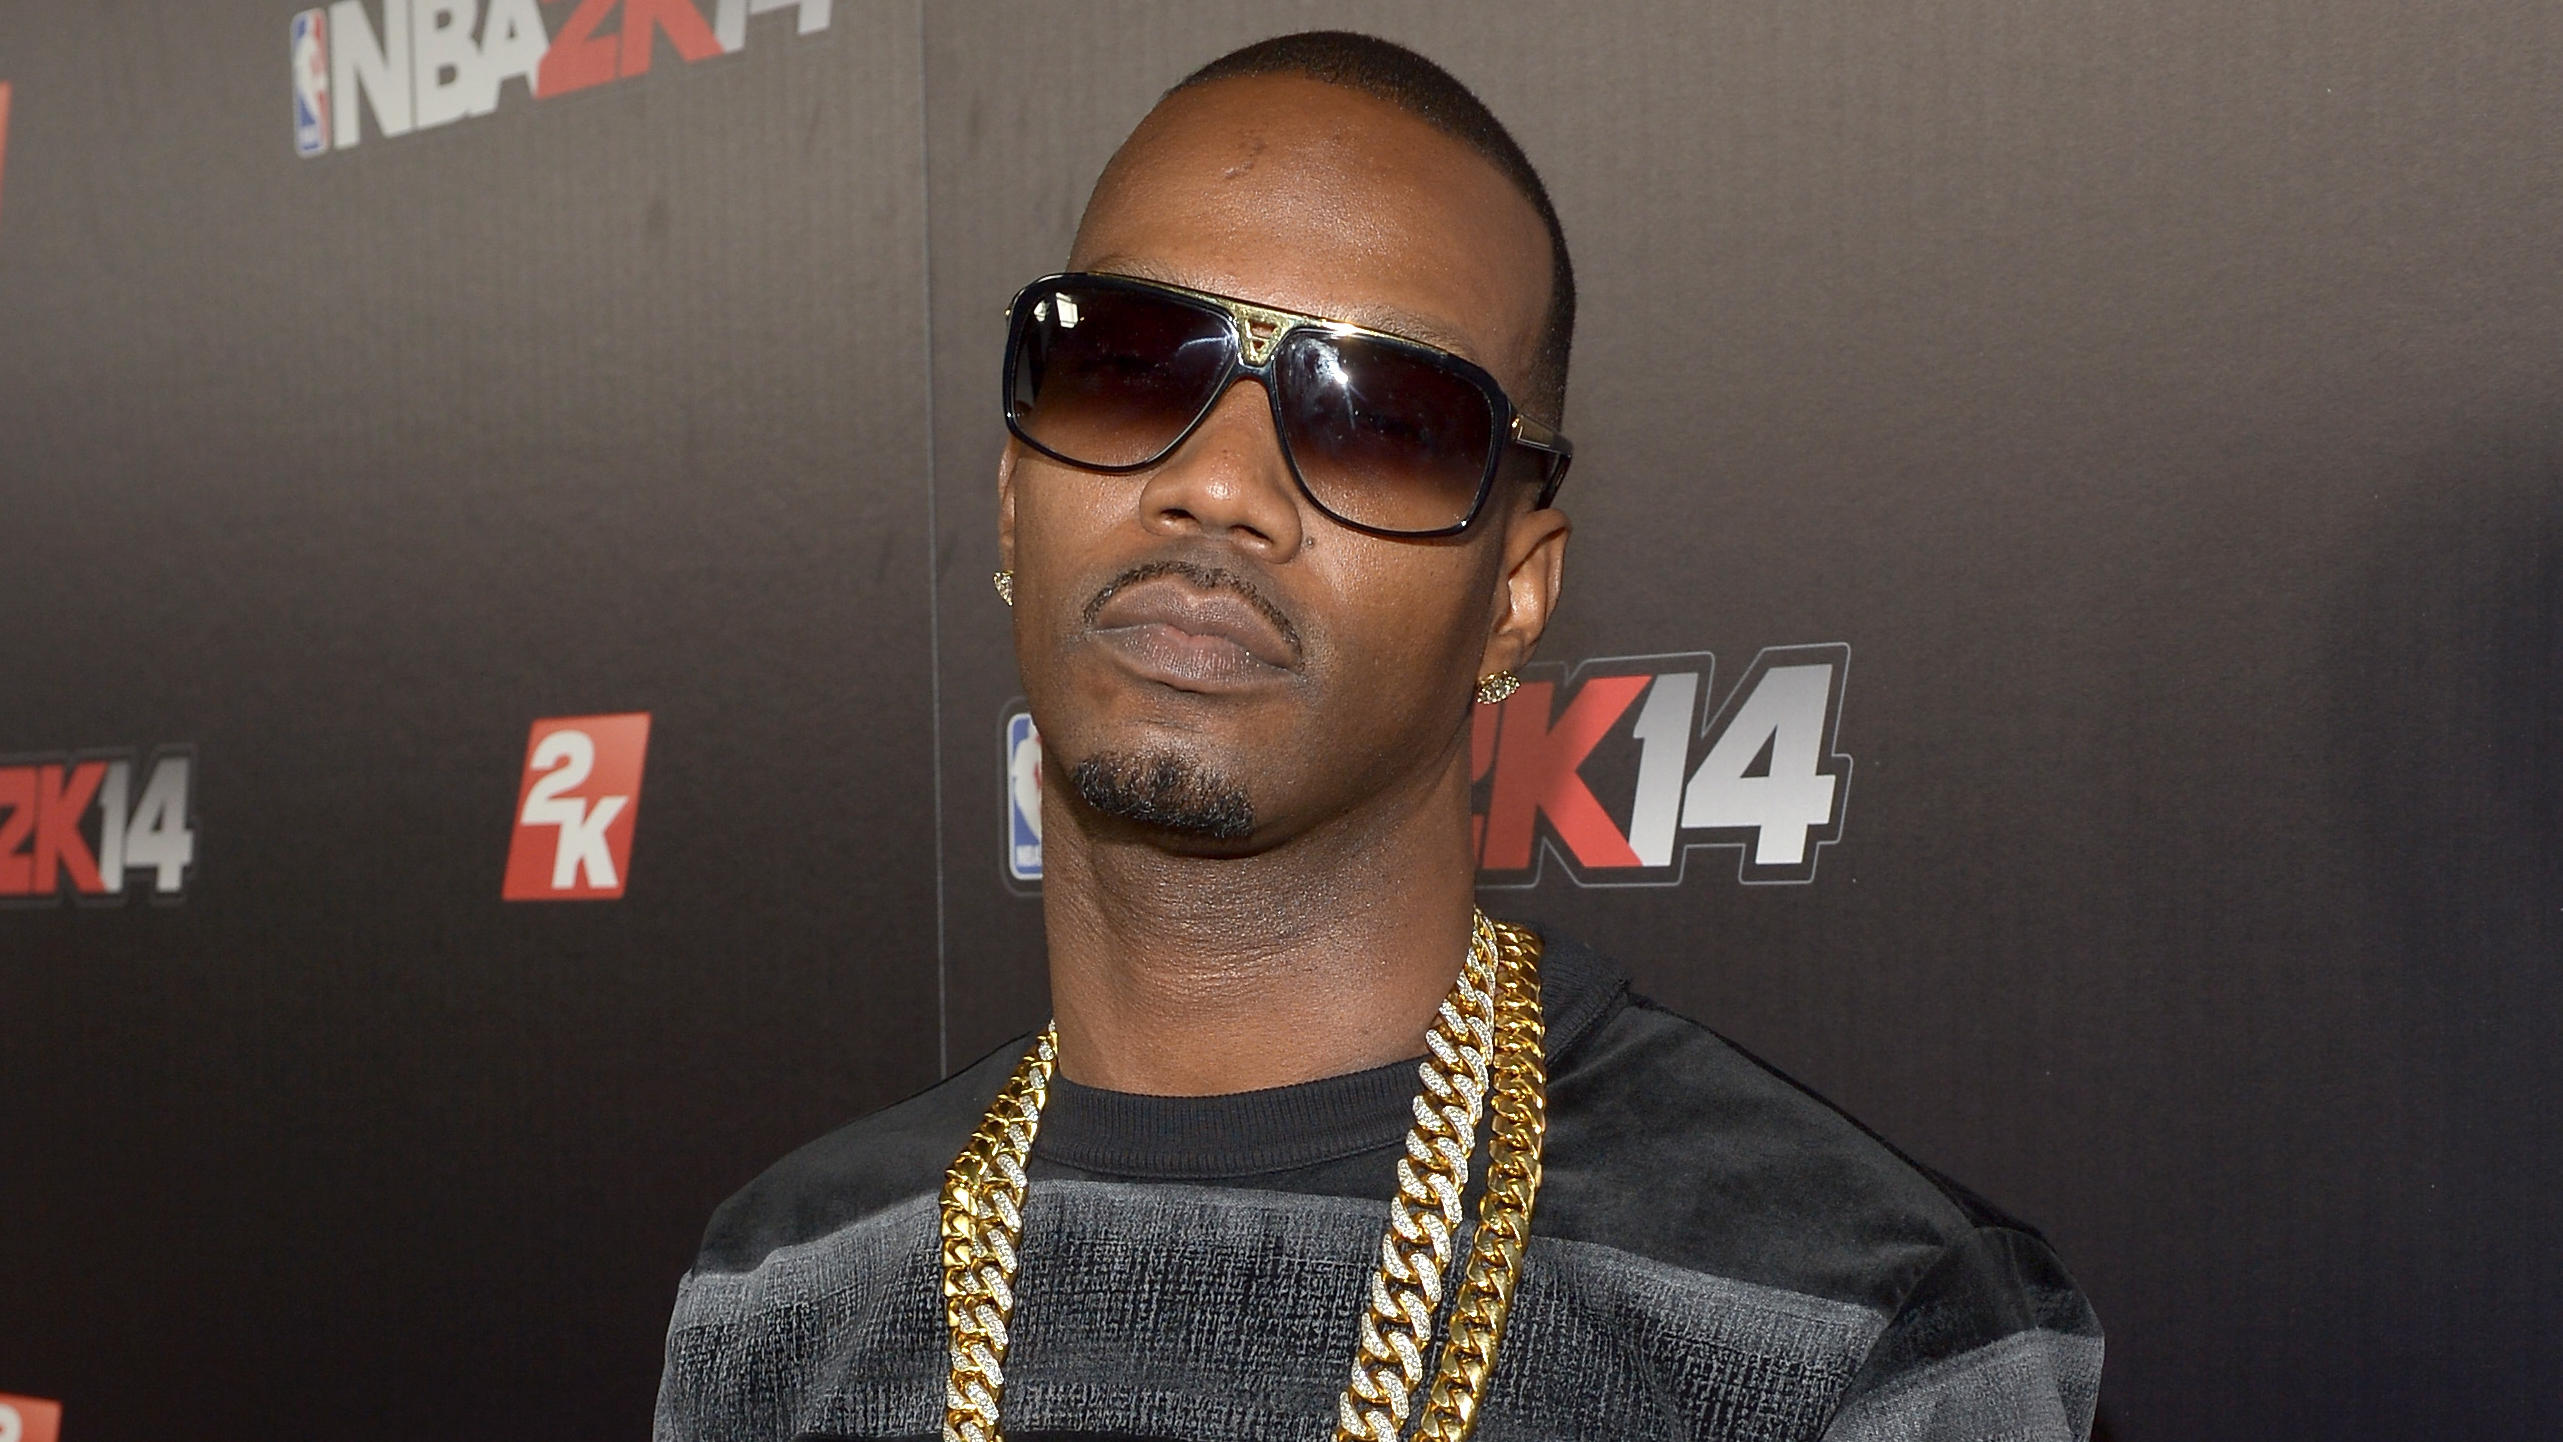 Juicy J earned a  million dollar salary - leaving the net worth at 20 million in 2018